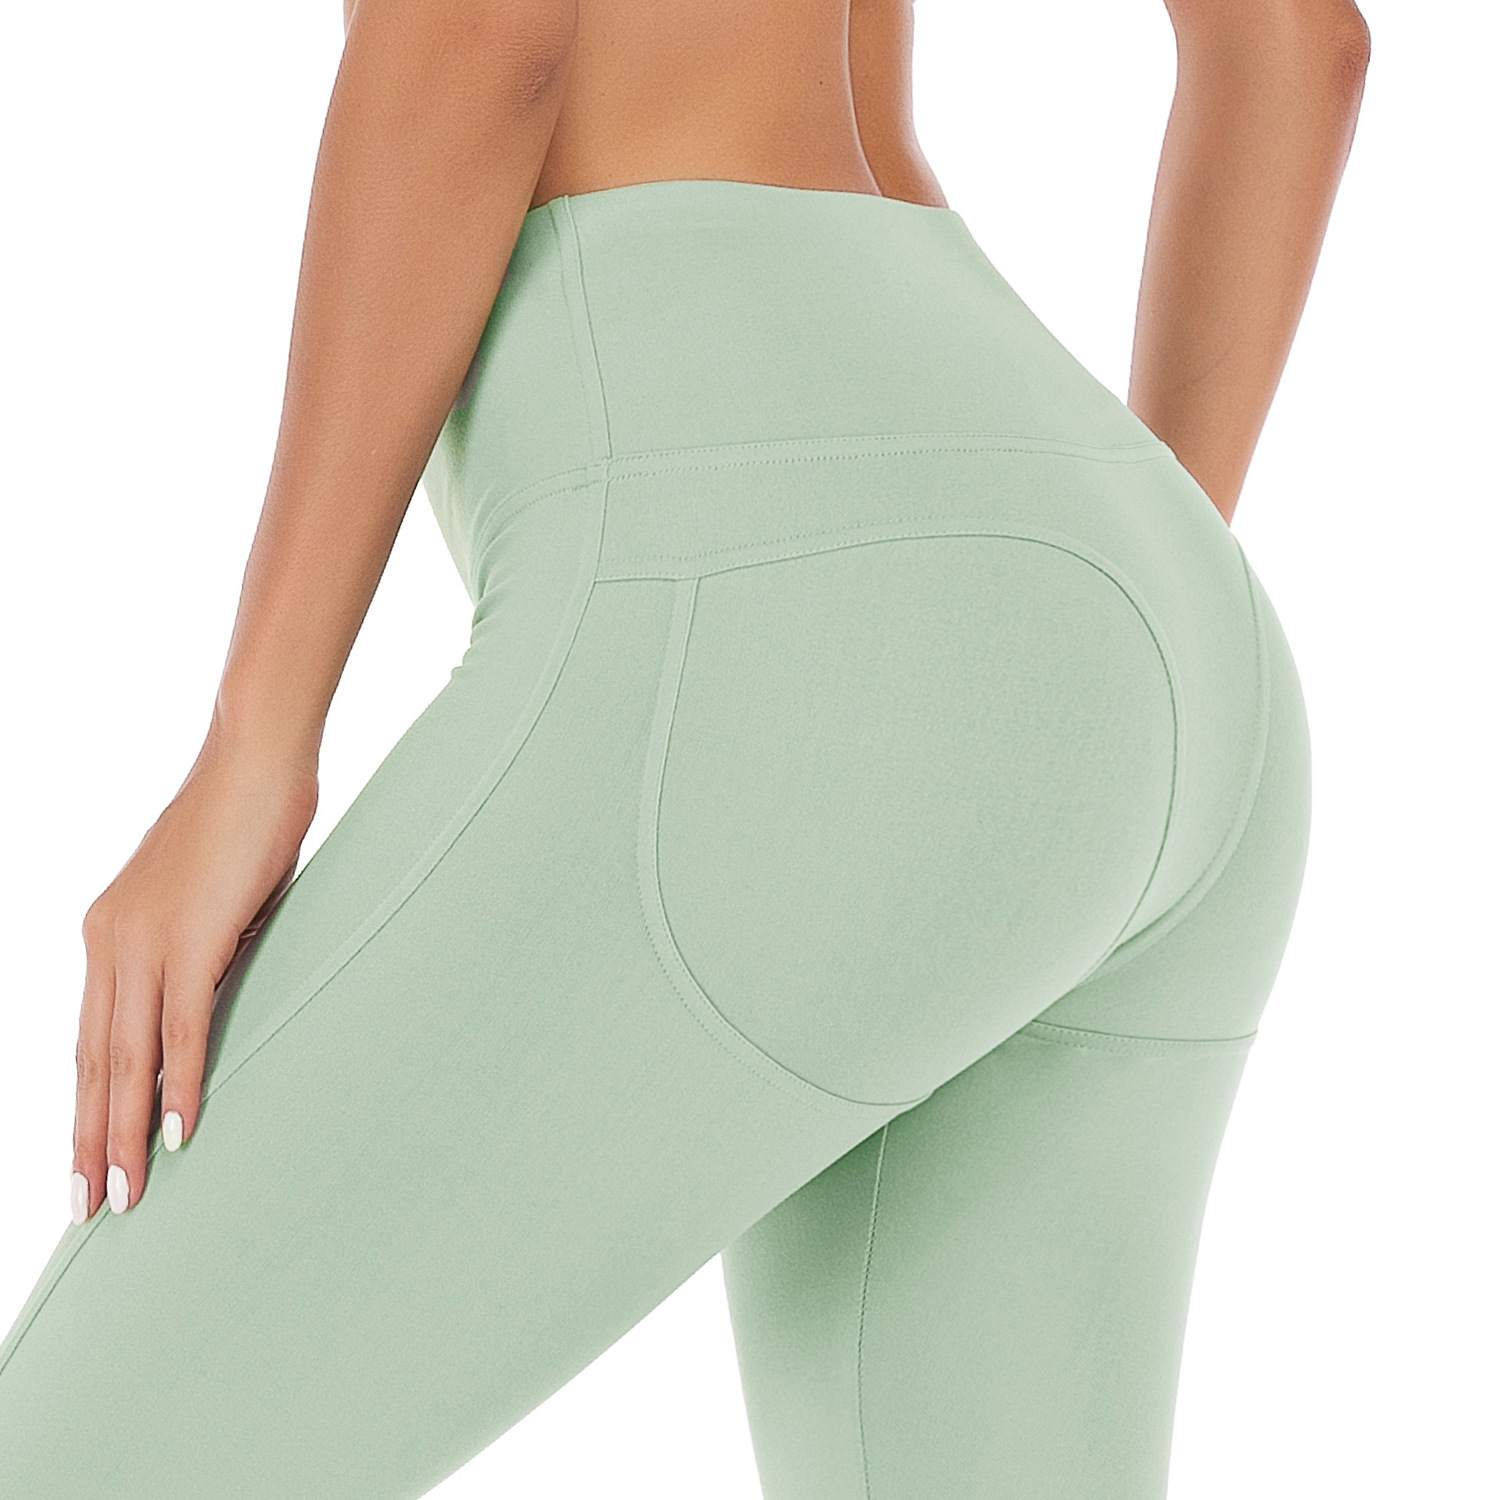 High Waistline Famous Peach Buttocks S Pants Running Training Quick-drying Fitness Pants Spring And Autumn Leggings